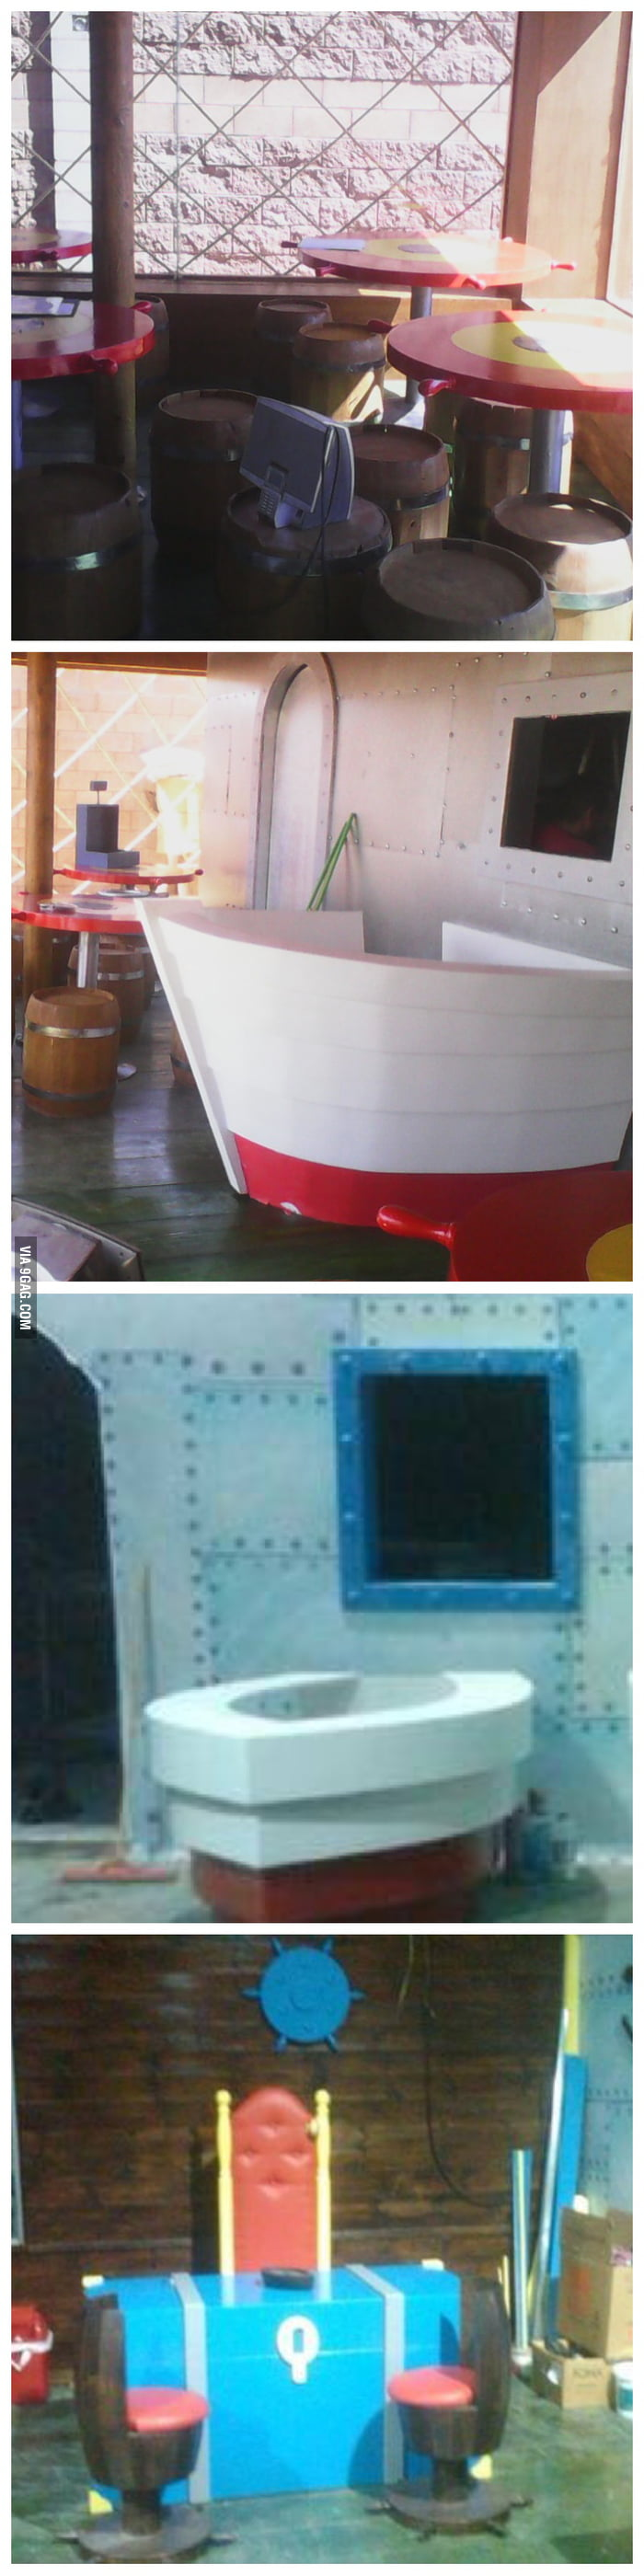 More pictures of the Krusty Krab - 9GAG